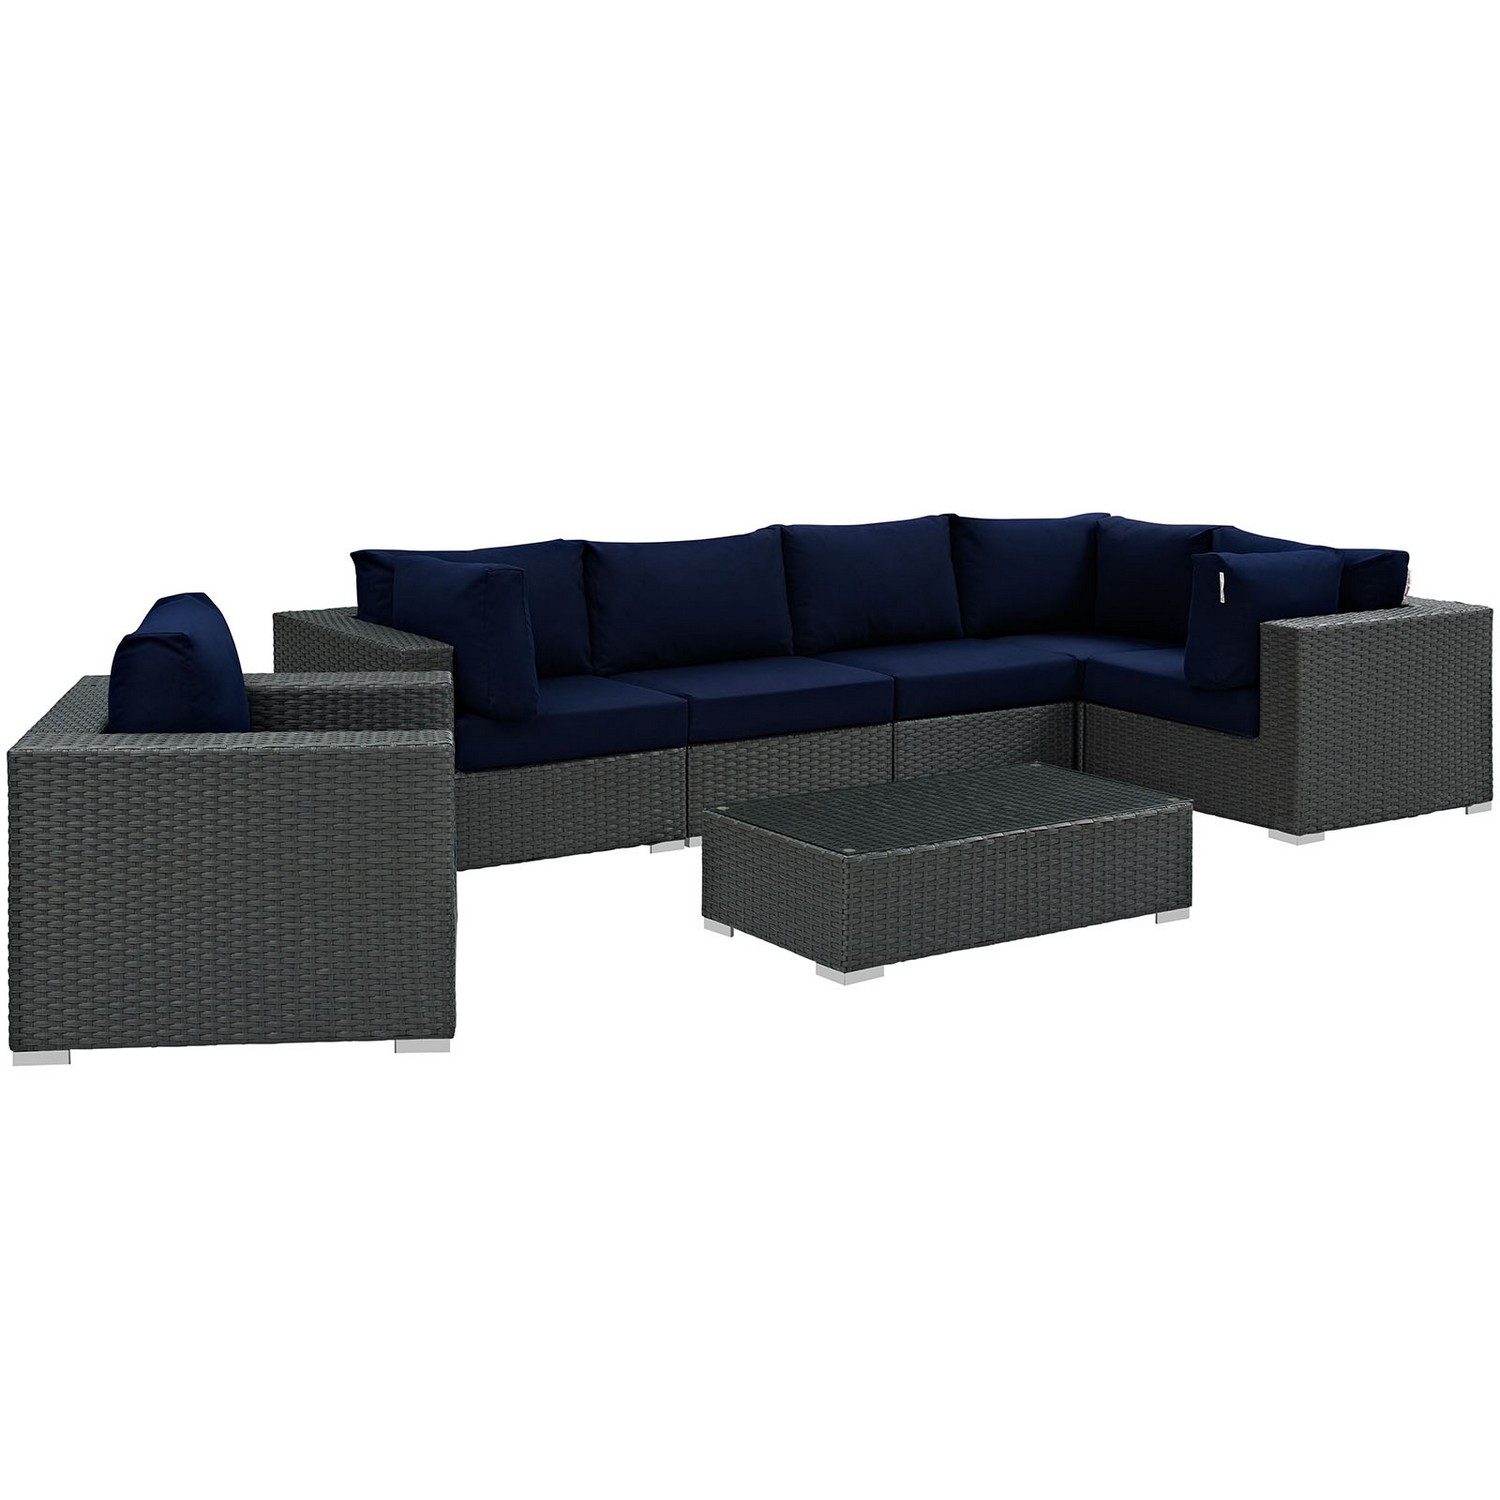 Modway Sojourn 7 Piece Outdoor Patio Sunbrella Sectional Set - Canvas Navy